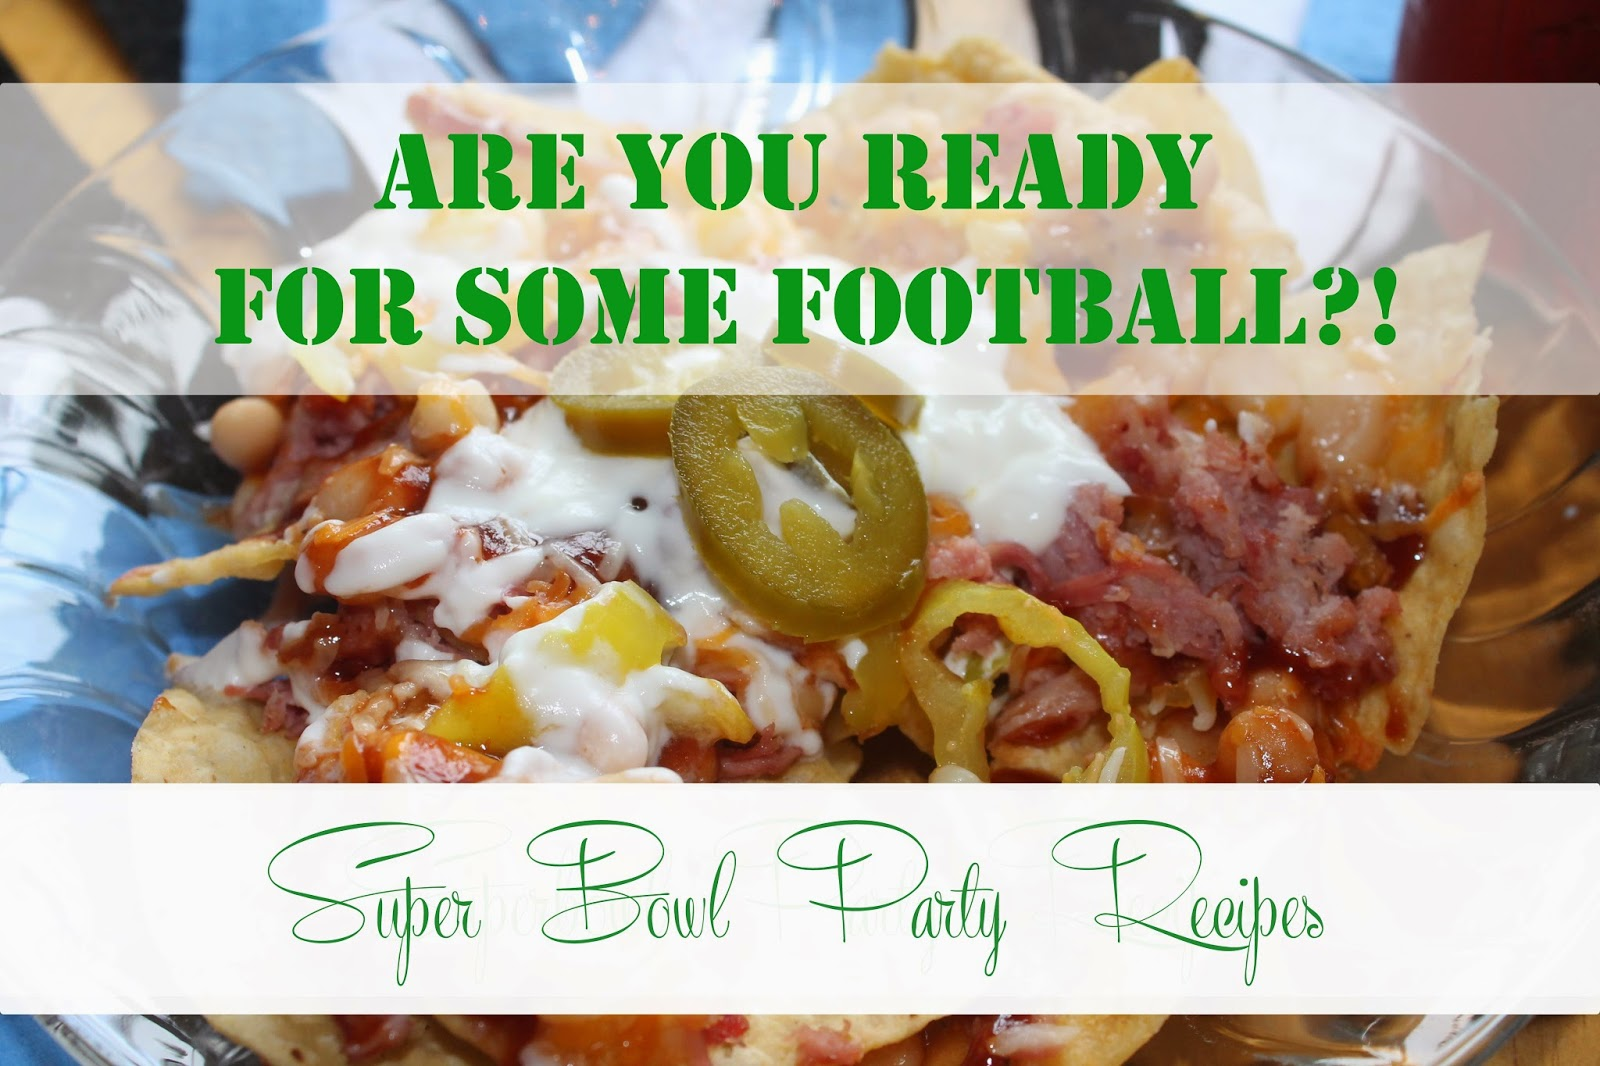 super bowl party recipes, the altered past blog